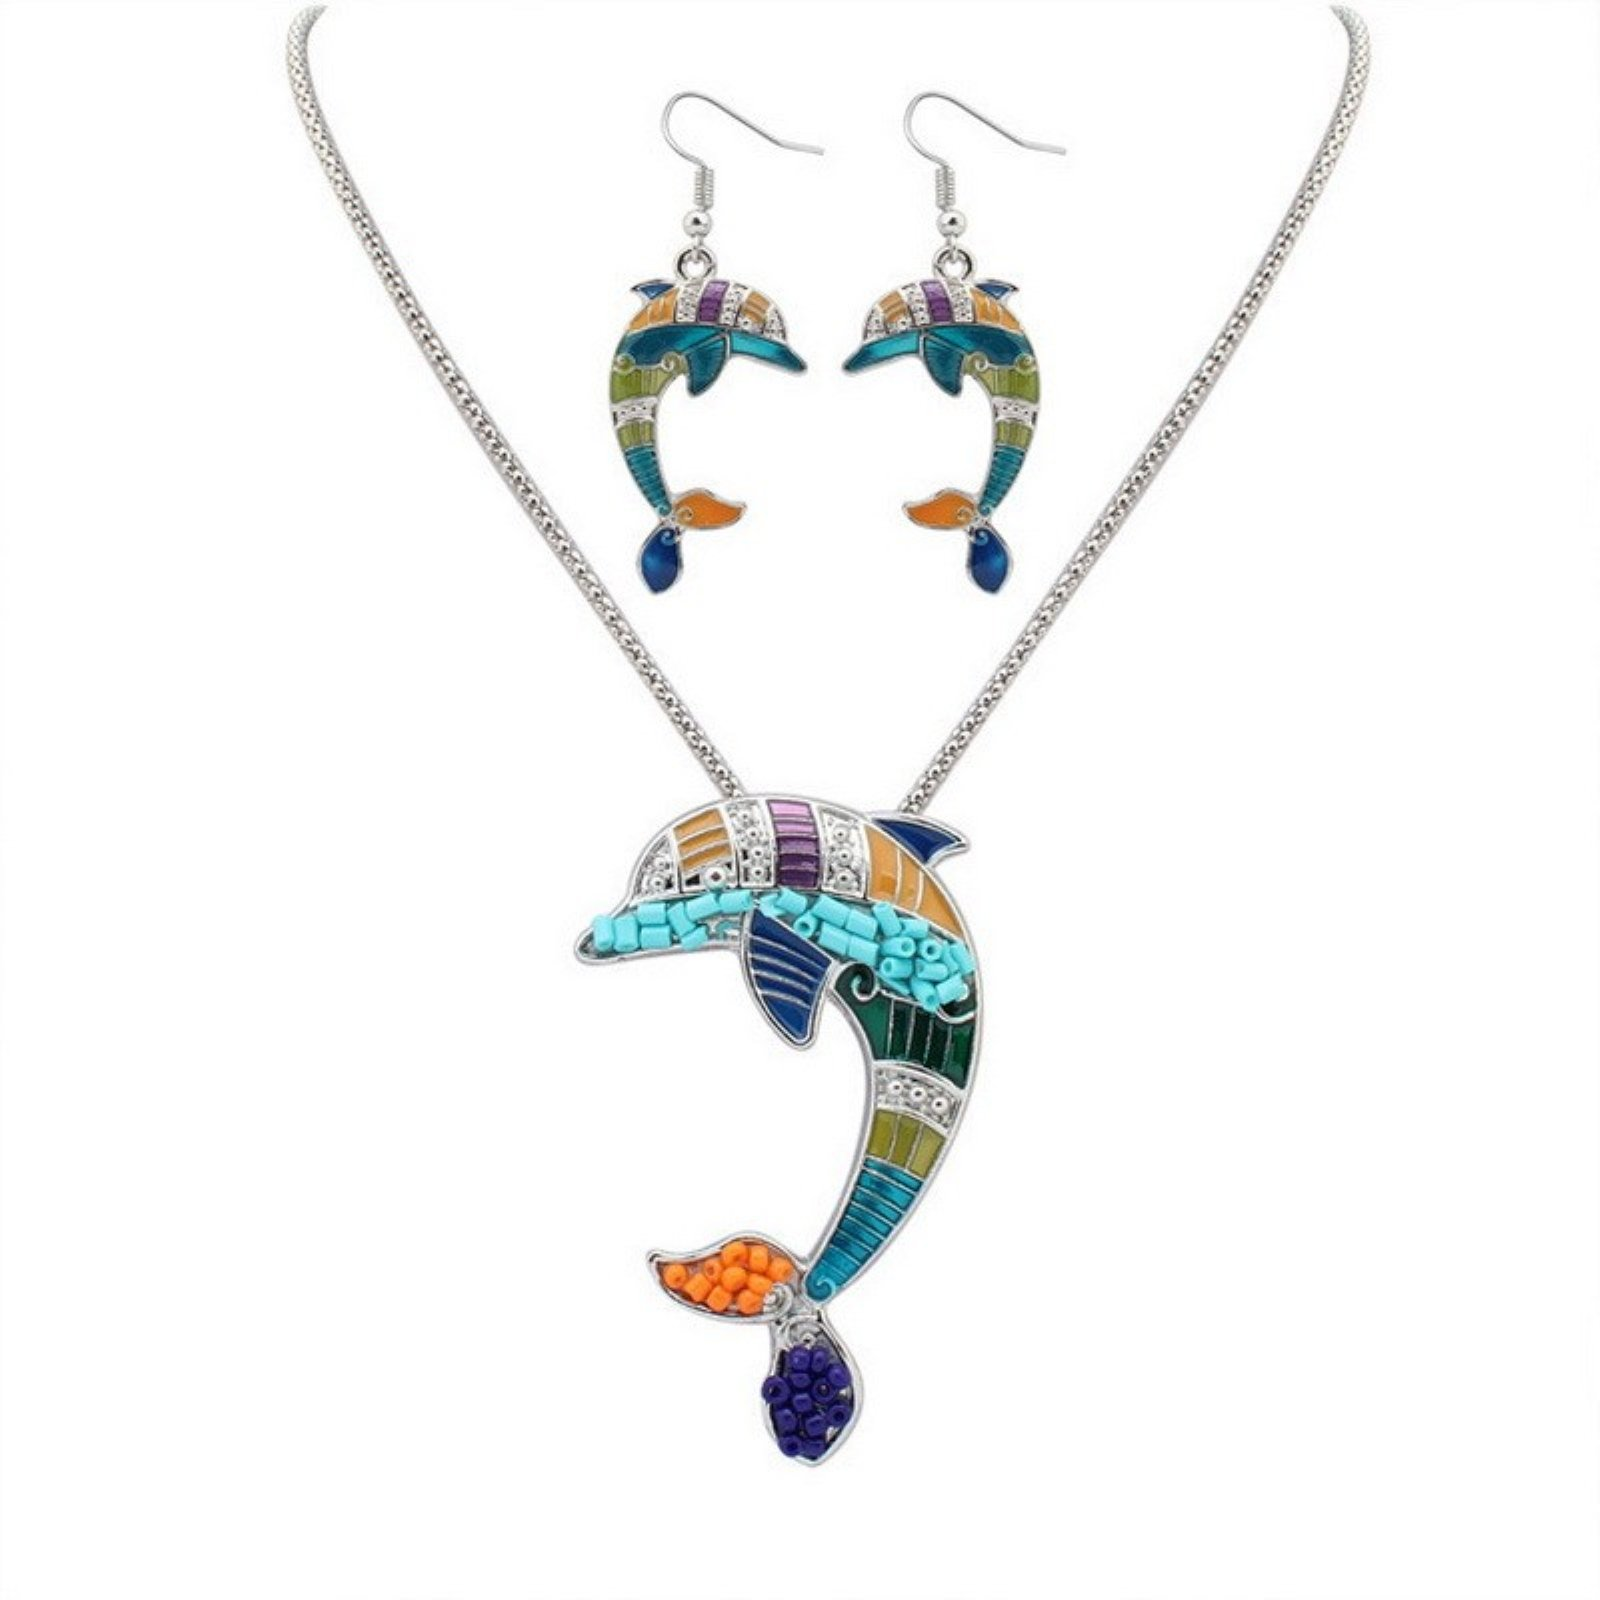 ptk12 Fashion Jewelry Vintage Enemal Colorful Animal Dolphins Necklace Earring Sets Top Quality Women